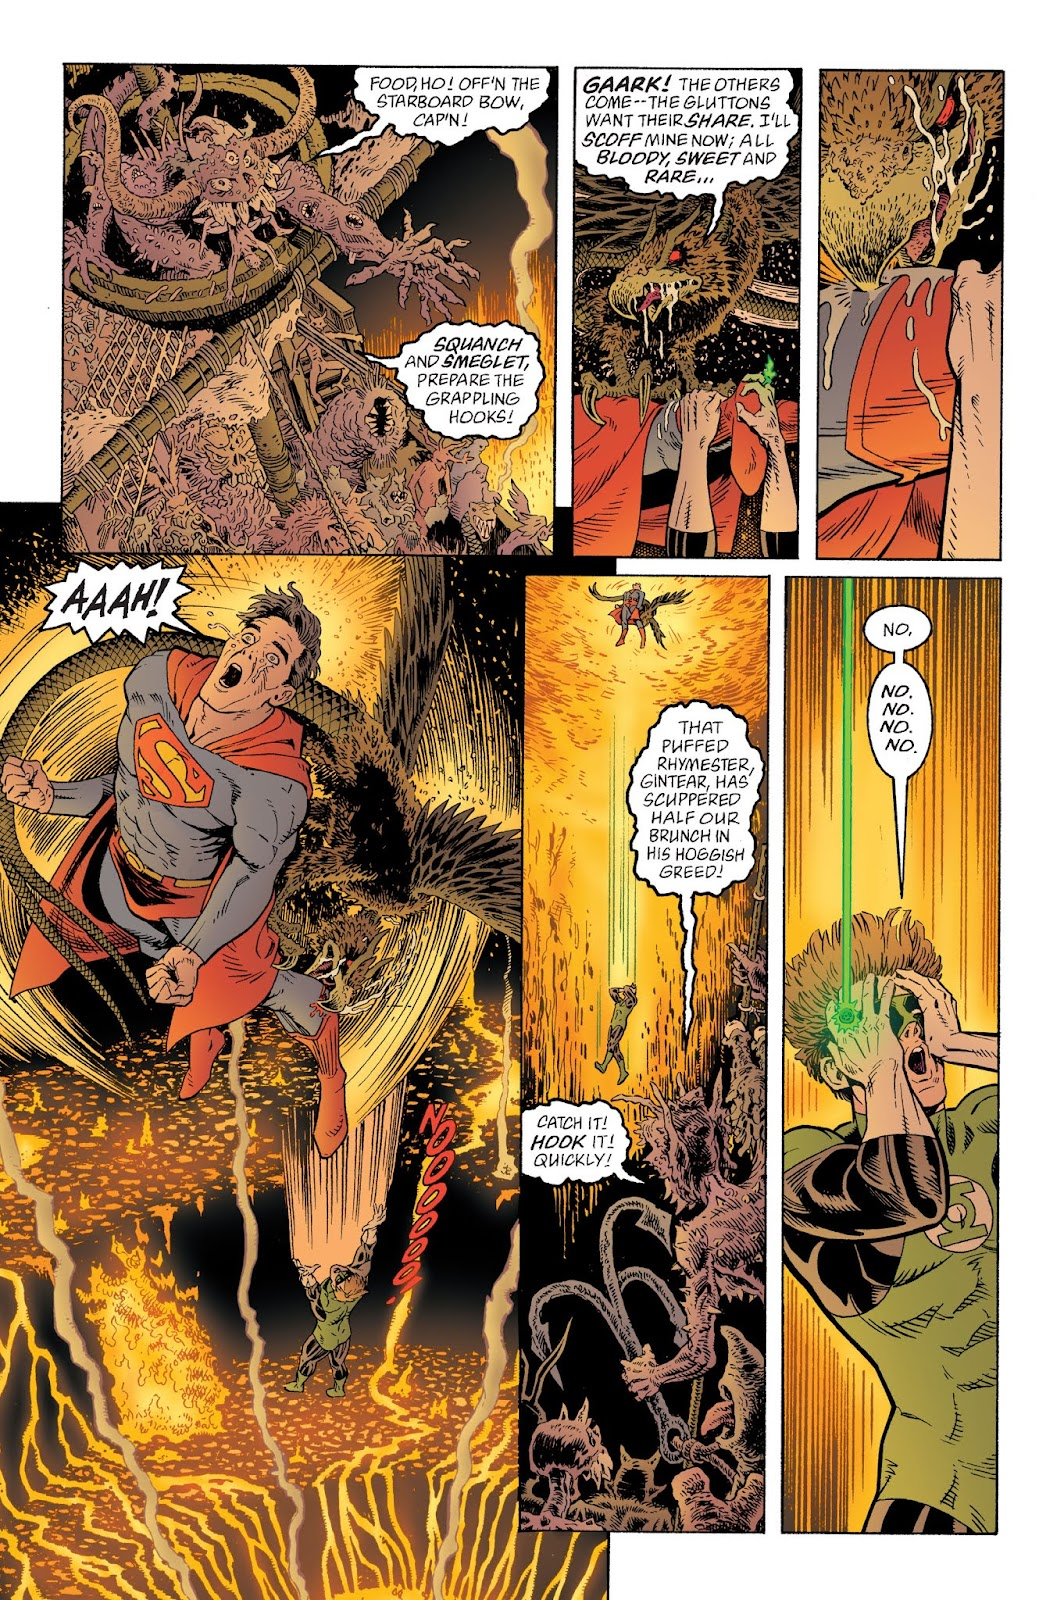 The DC Universe by Neil Gaiman: The Deluxe Edition 2 Page 1